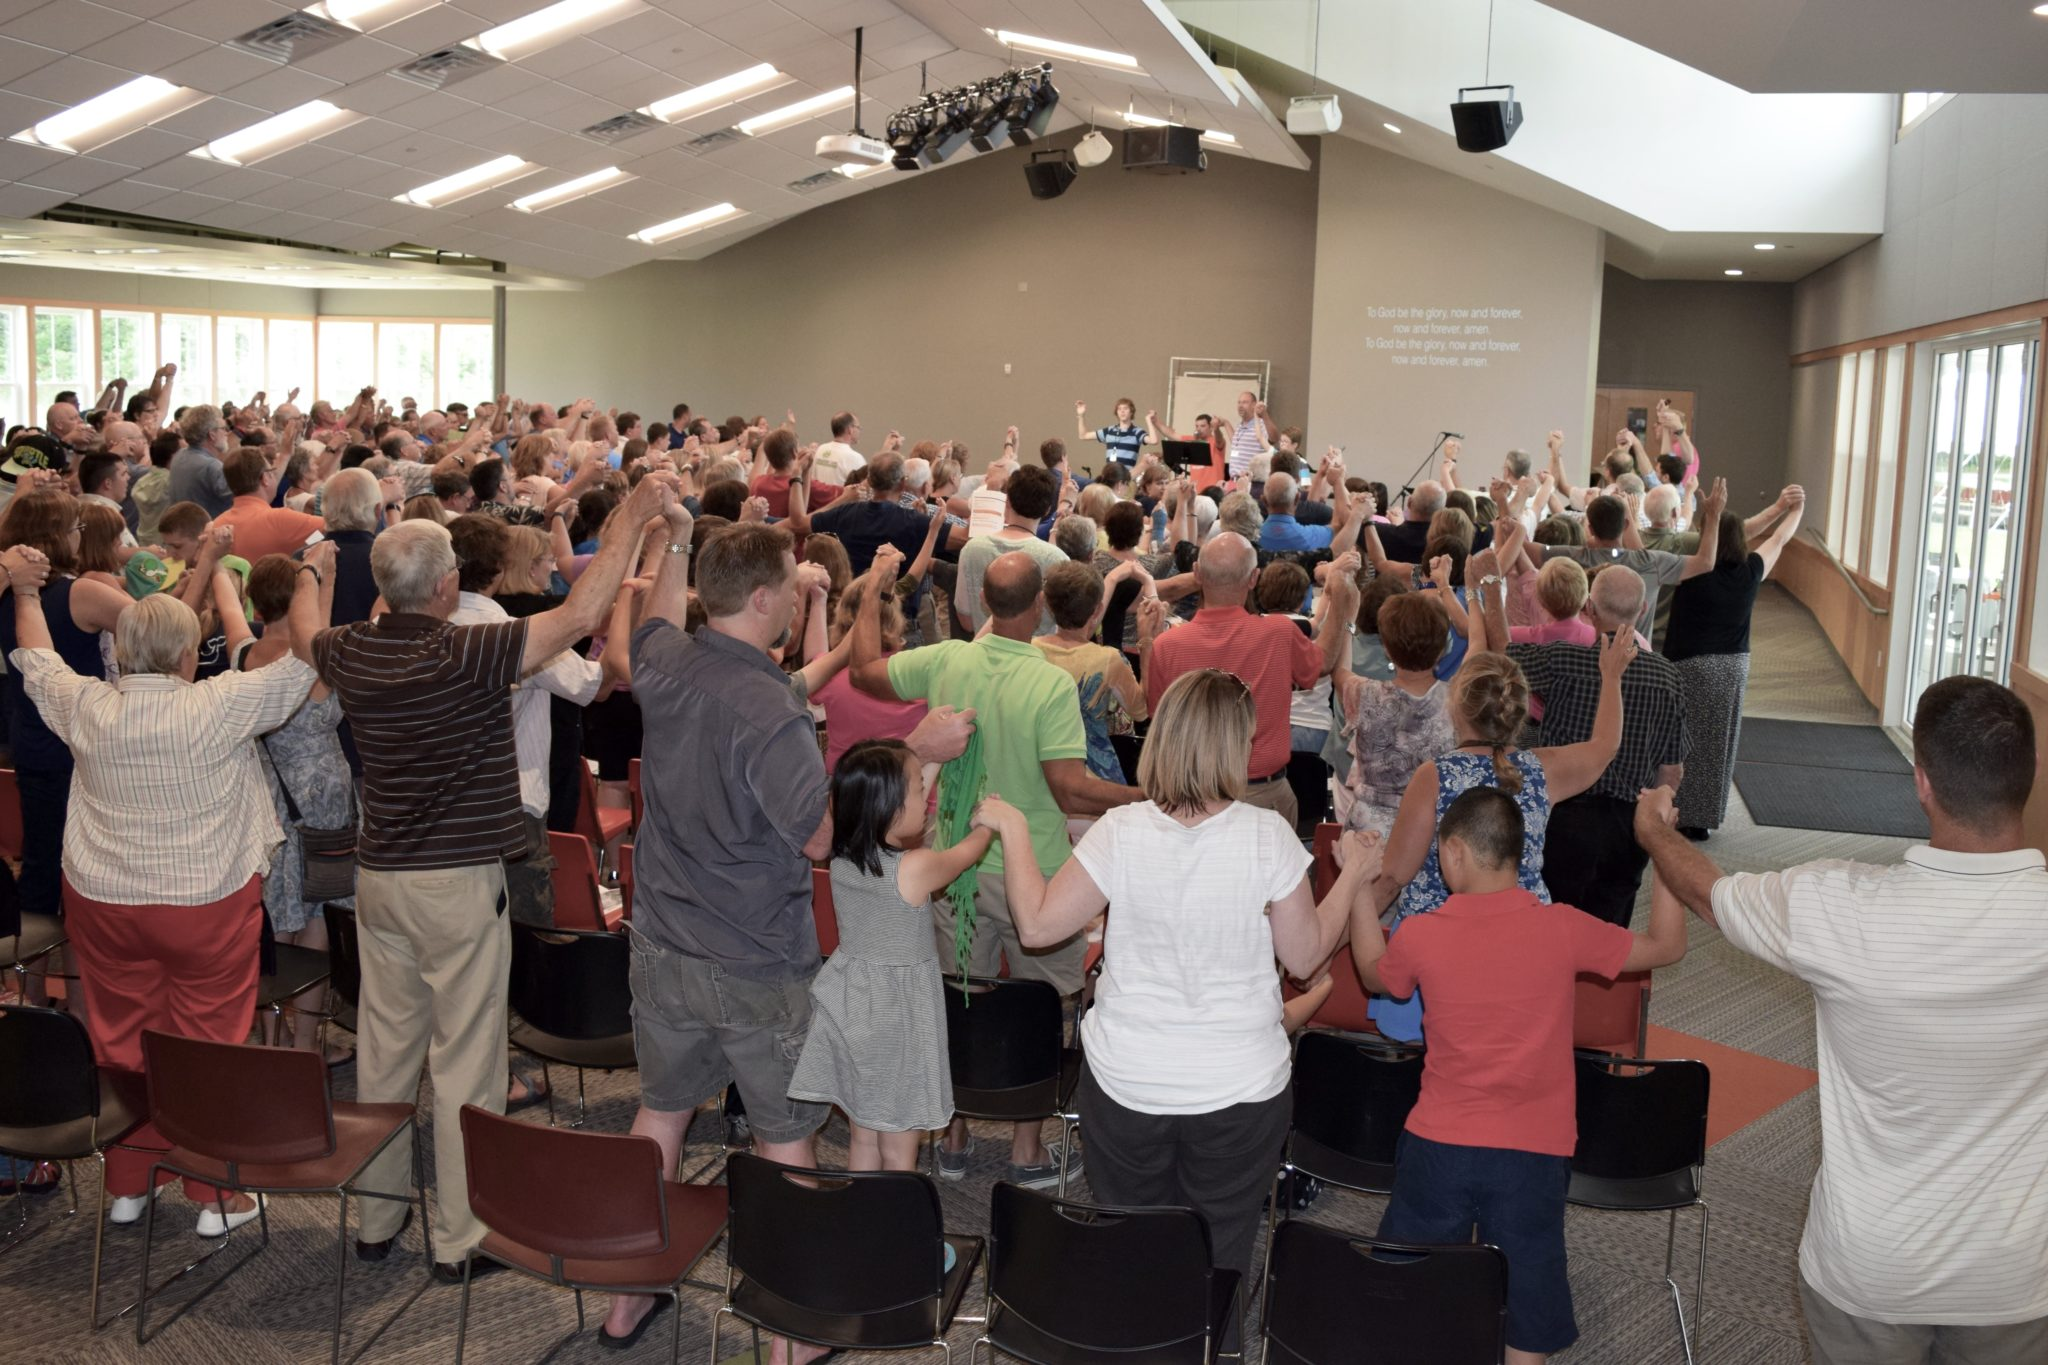 People join hands during worship in a church sanctuary.